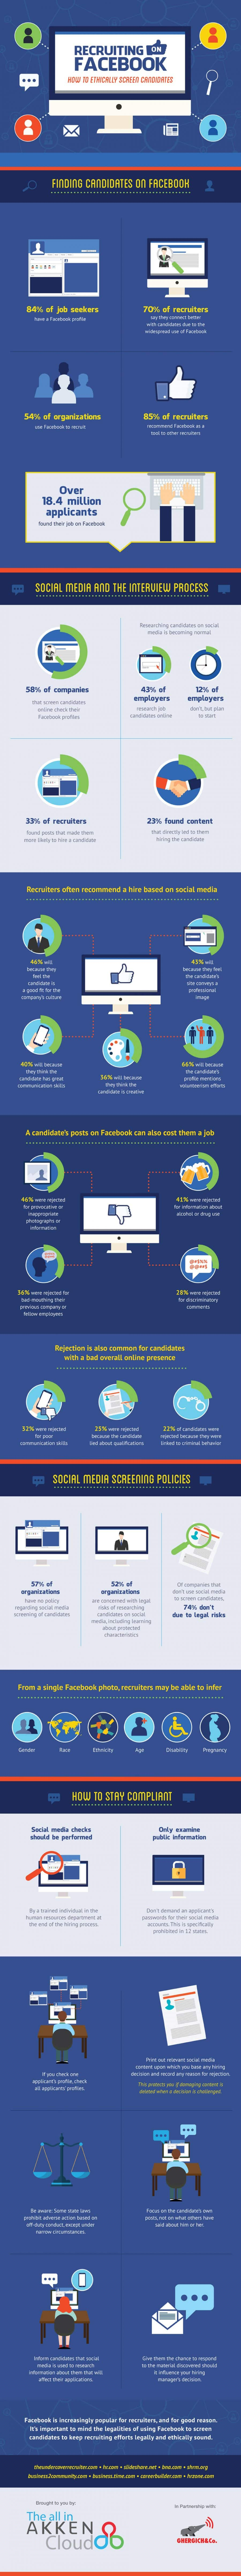 How-to-Recruit-on-Facebook-Infographic